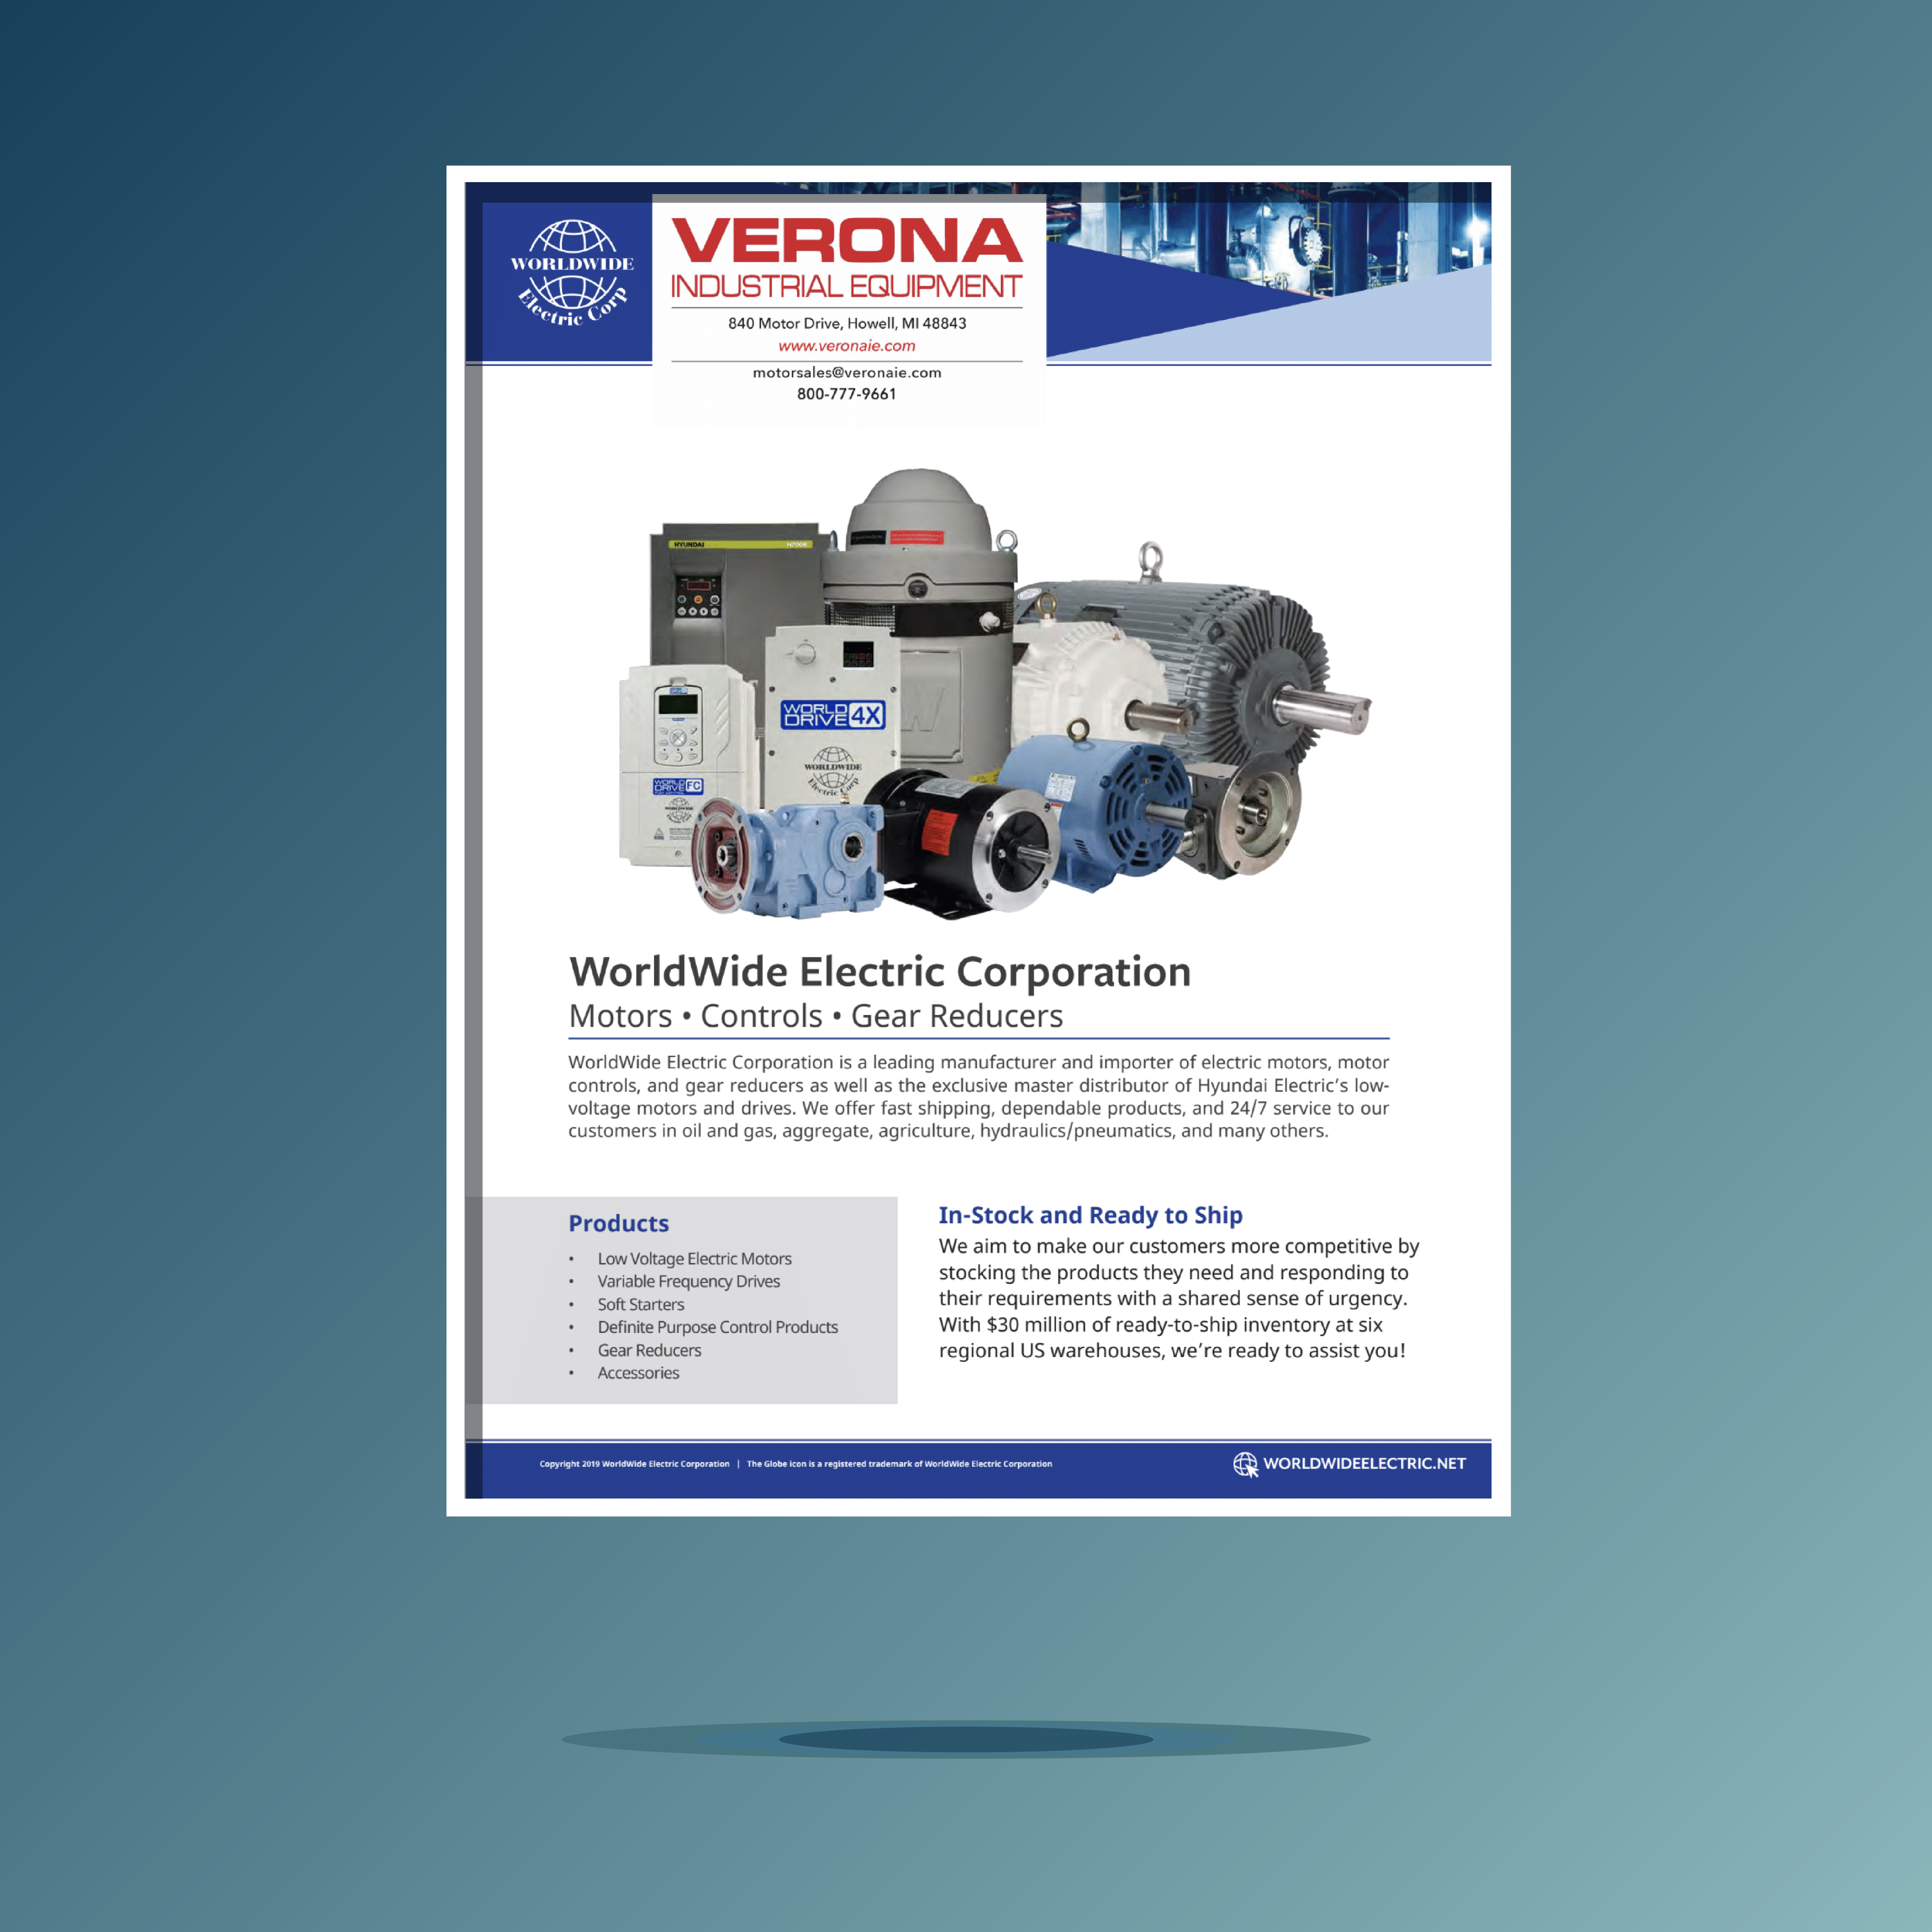 worldwide electric corp-motors-controls-gears product catalog cover-01